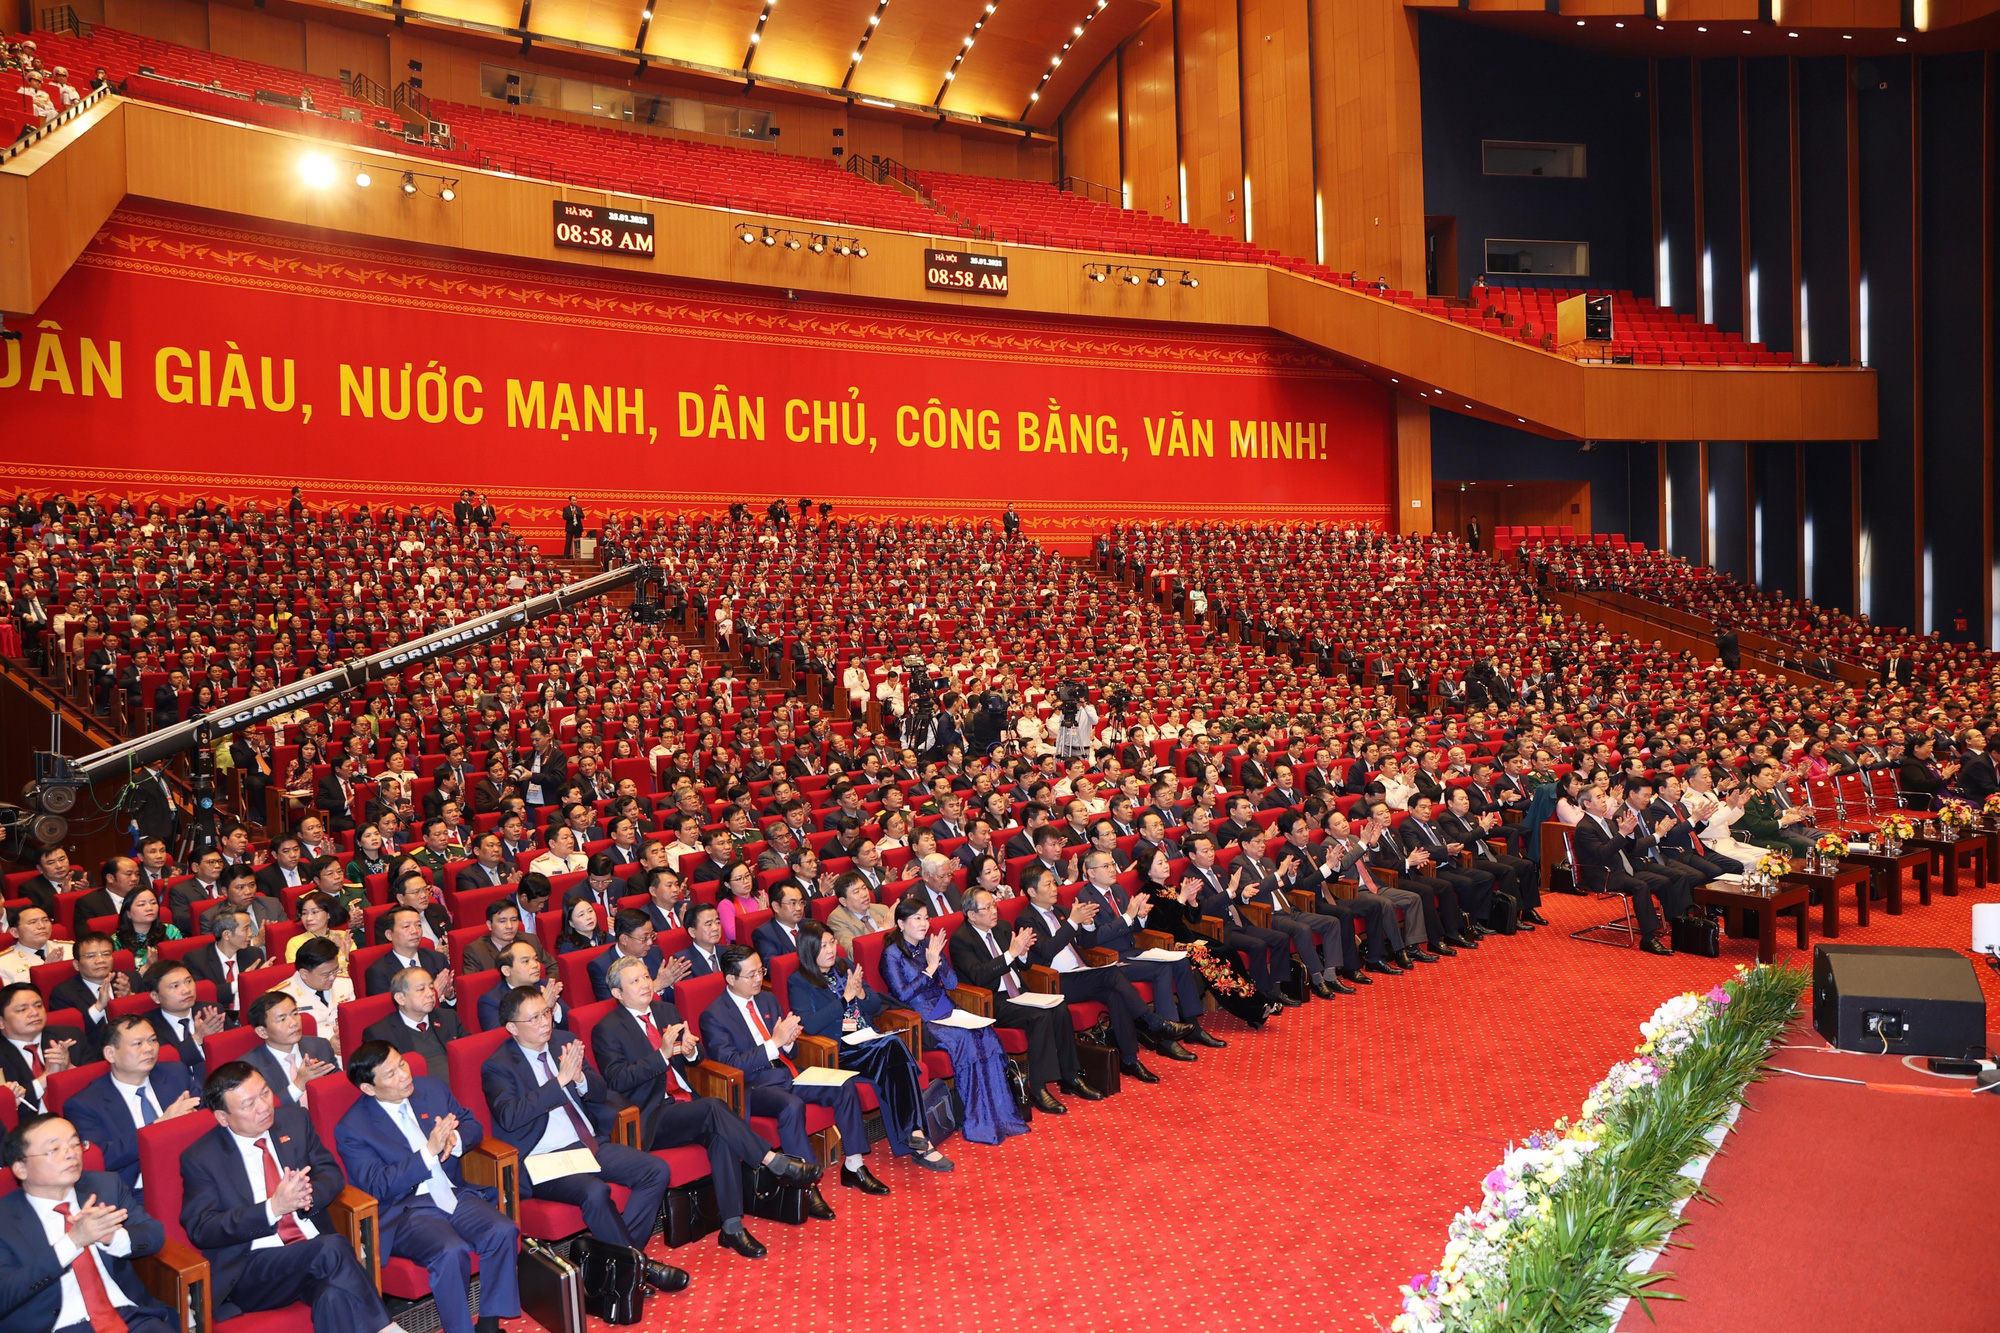 Delegates attend the preparatory session of Vietnam's 13th National Party Congress in Hanoi, January 25, 2021. Photo: Vietnam News Agency